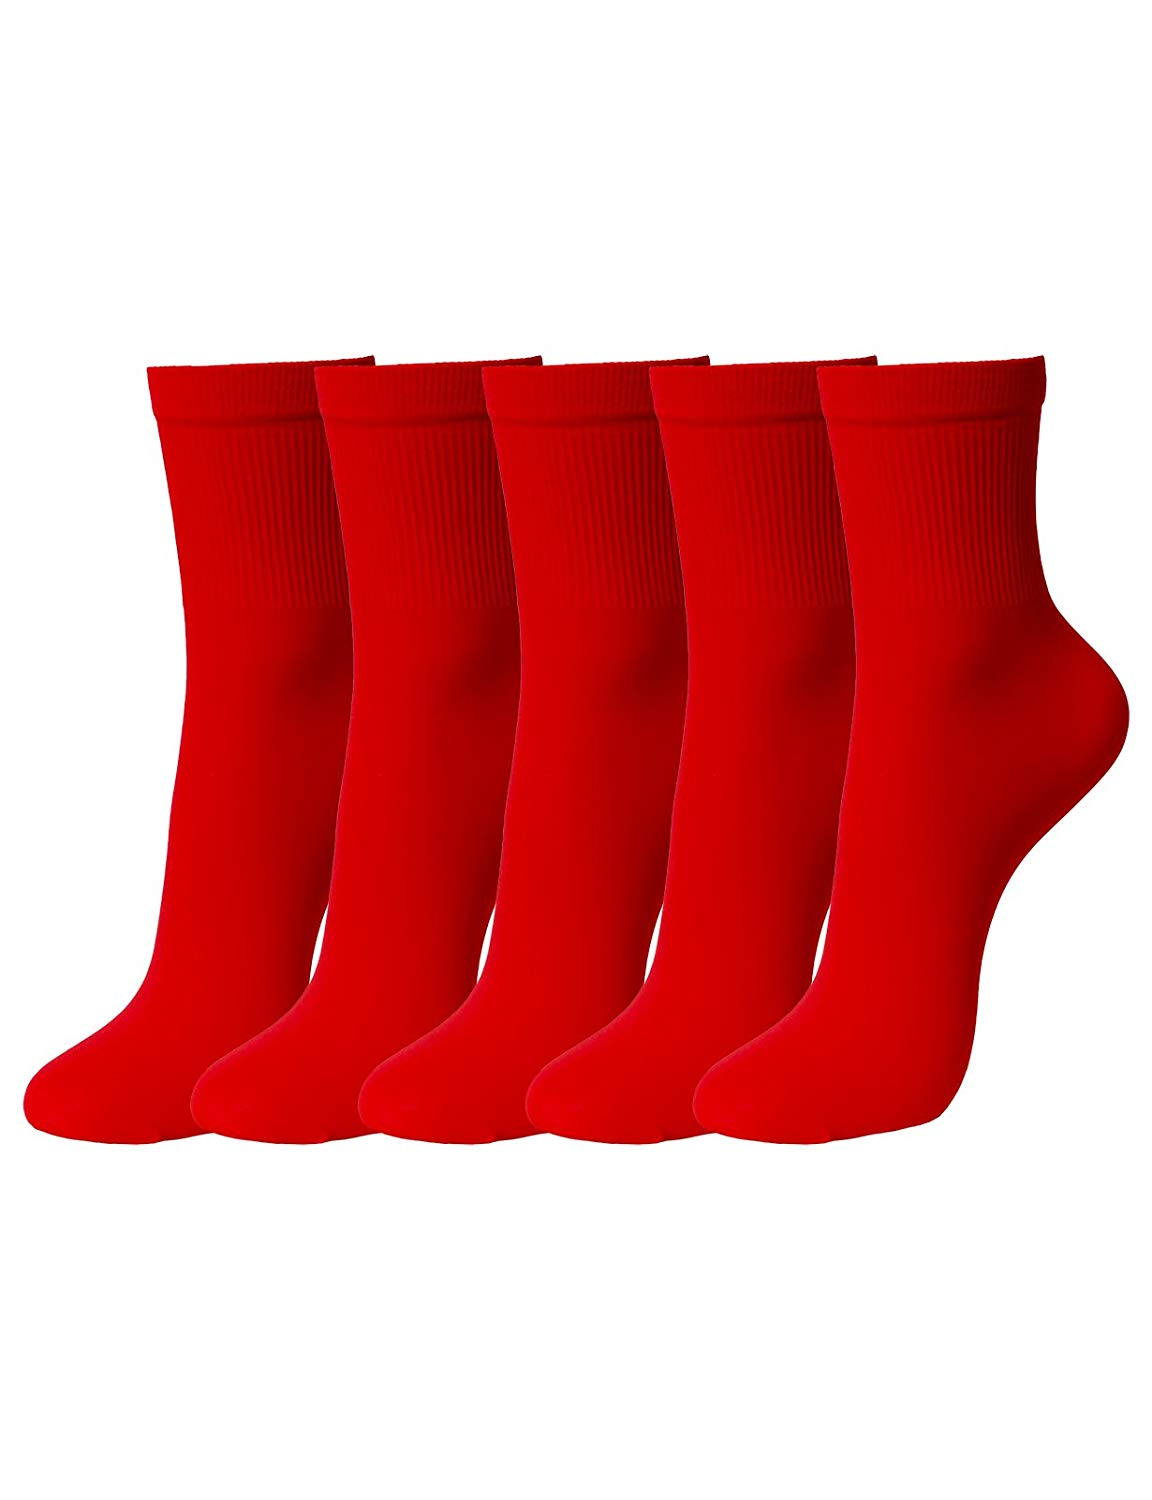 7a3c5d3bf Get Quotations · OSABASA Women 5or 10 Pairs Color Nylon Ankle High Tights  Hosiery Socks